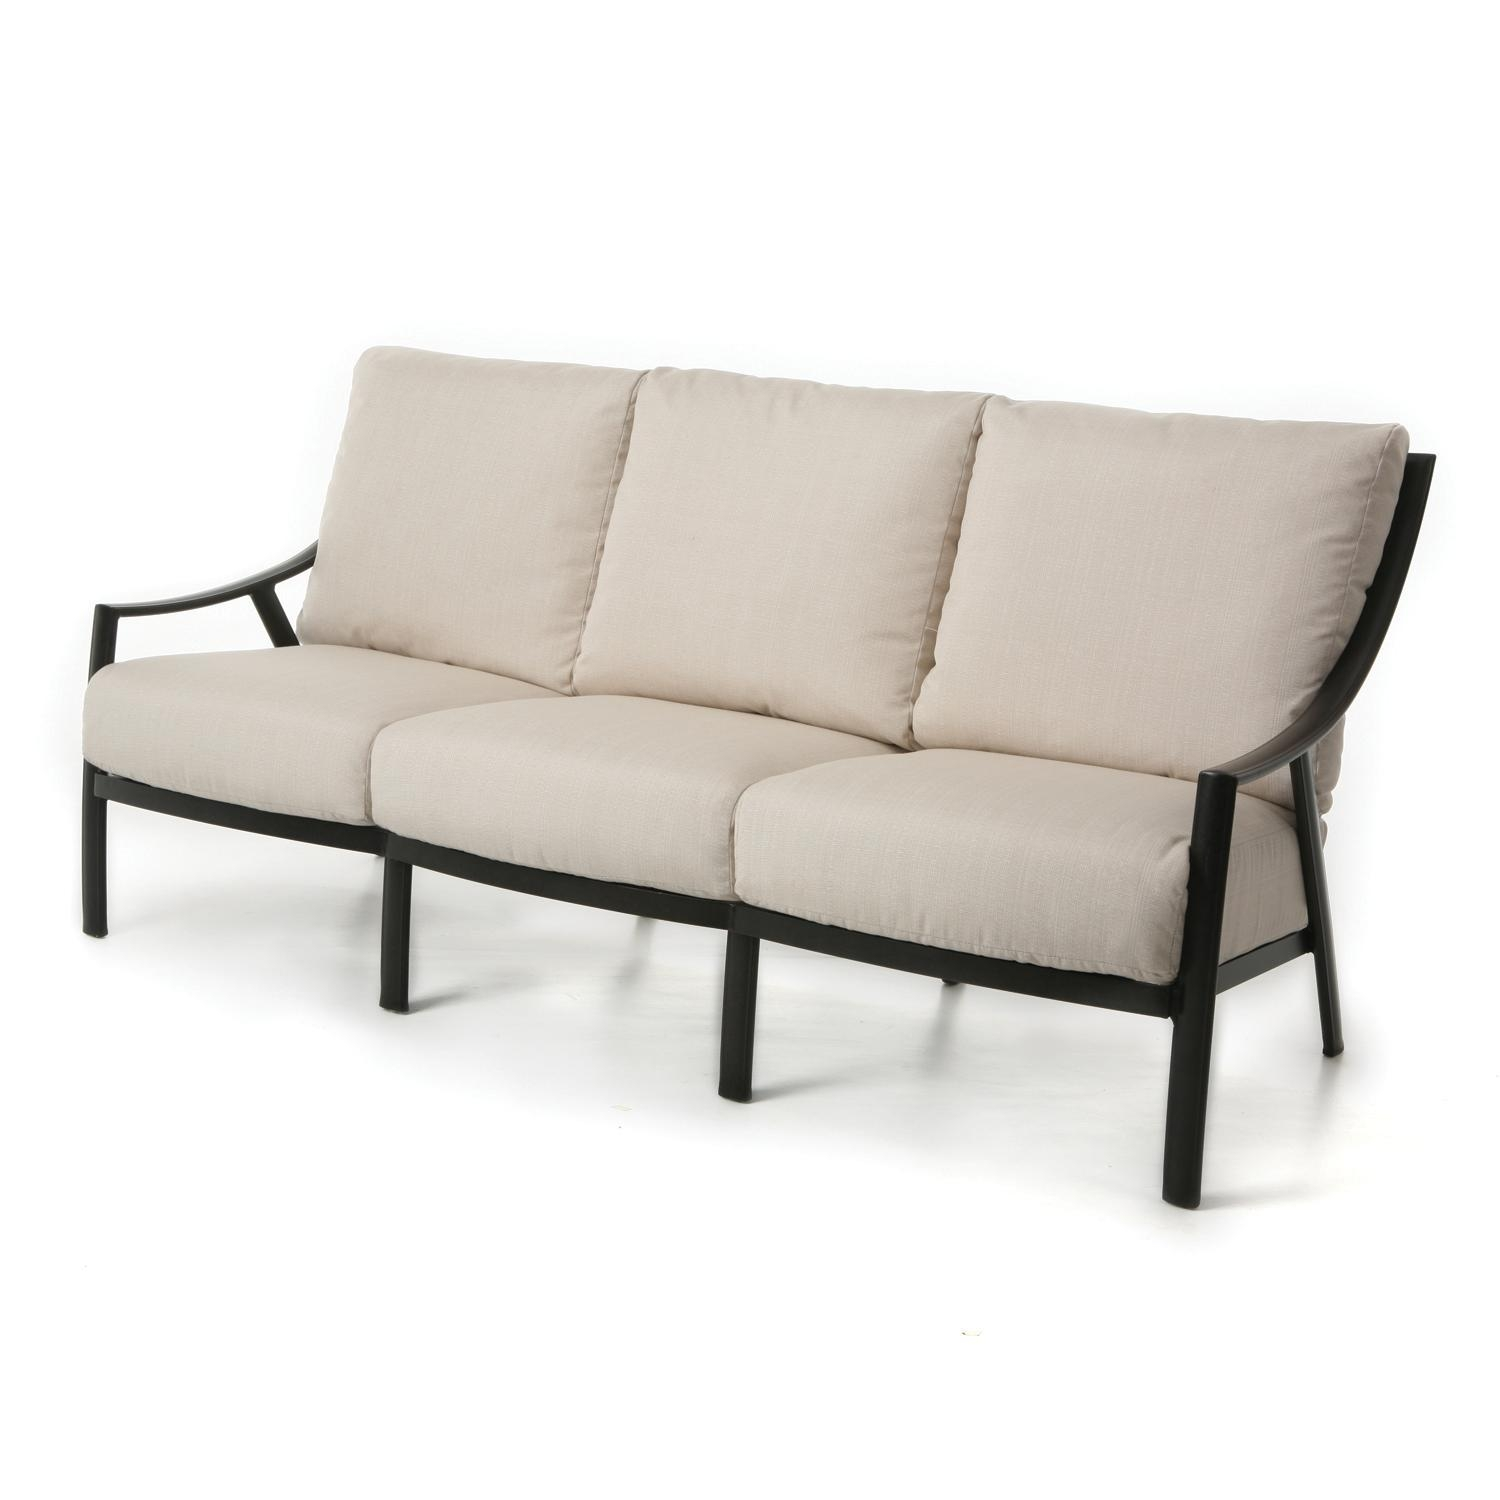 Stratford Cushion Sofa | Mallin Casual Furniture With Regard To Stratford Sofas (Image 13 of 20)